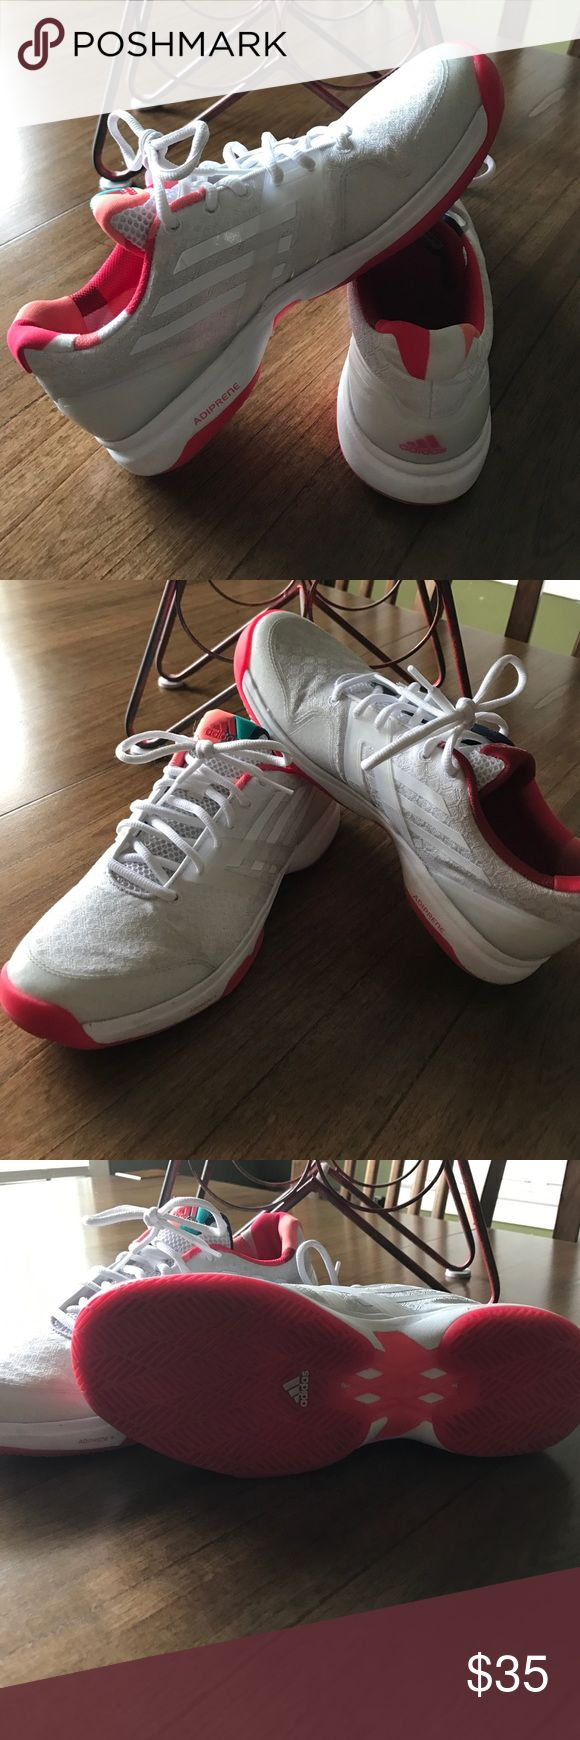 Adidas adizero Ubersonic Brand new, worn one time, tennis shoes. Made for the court, these are extremely lightweight and breathable to give you the best comfort on the tennis court. Adidas Shoes Sneakers